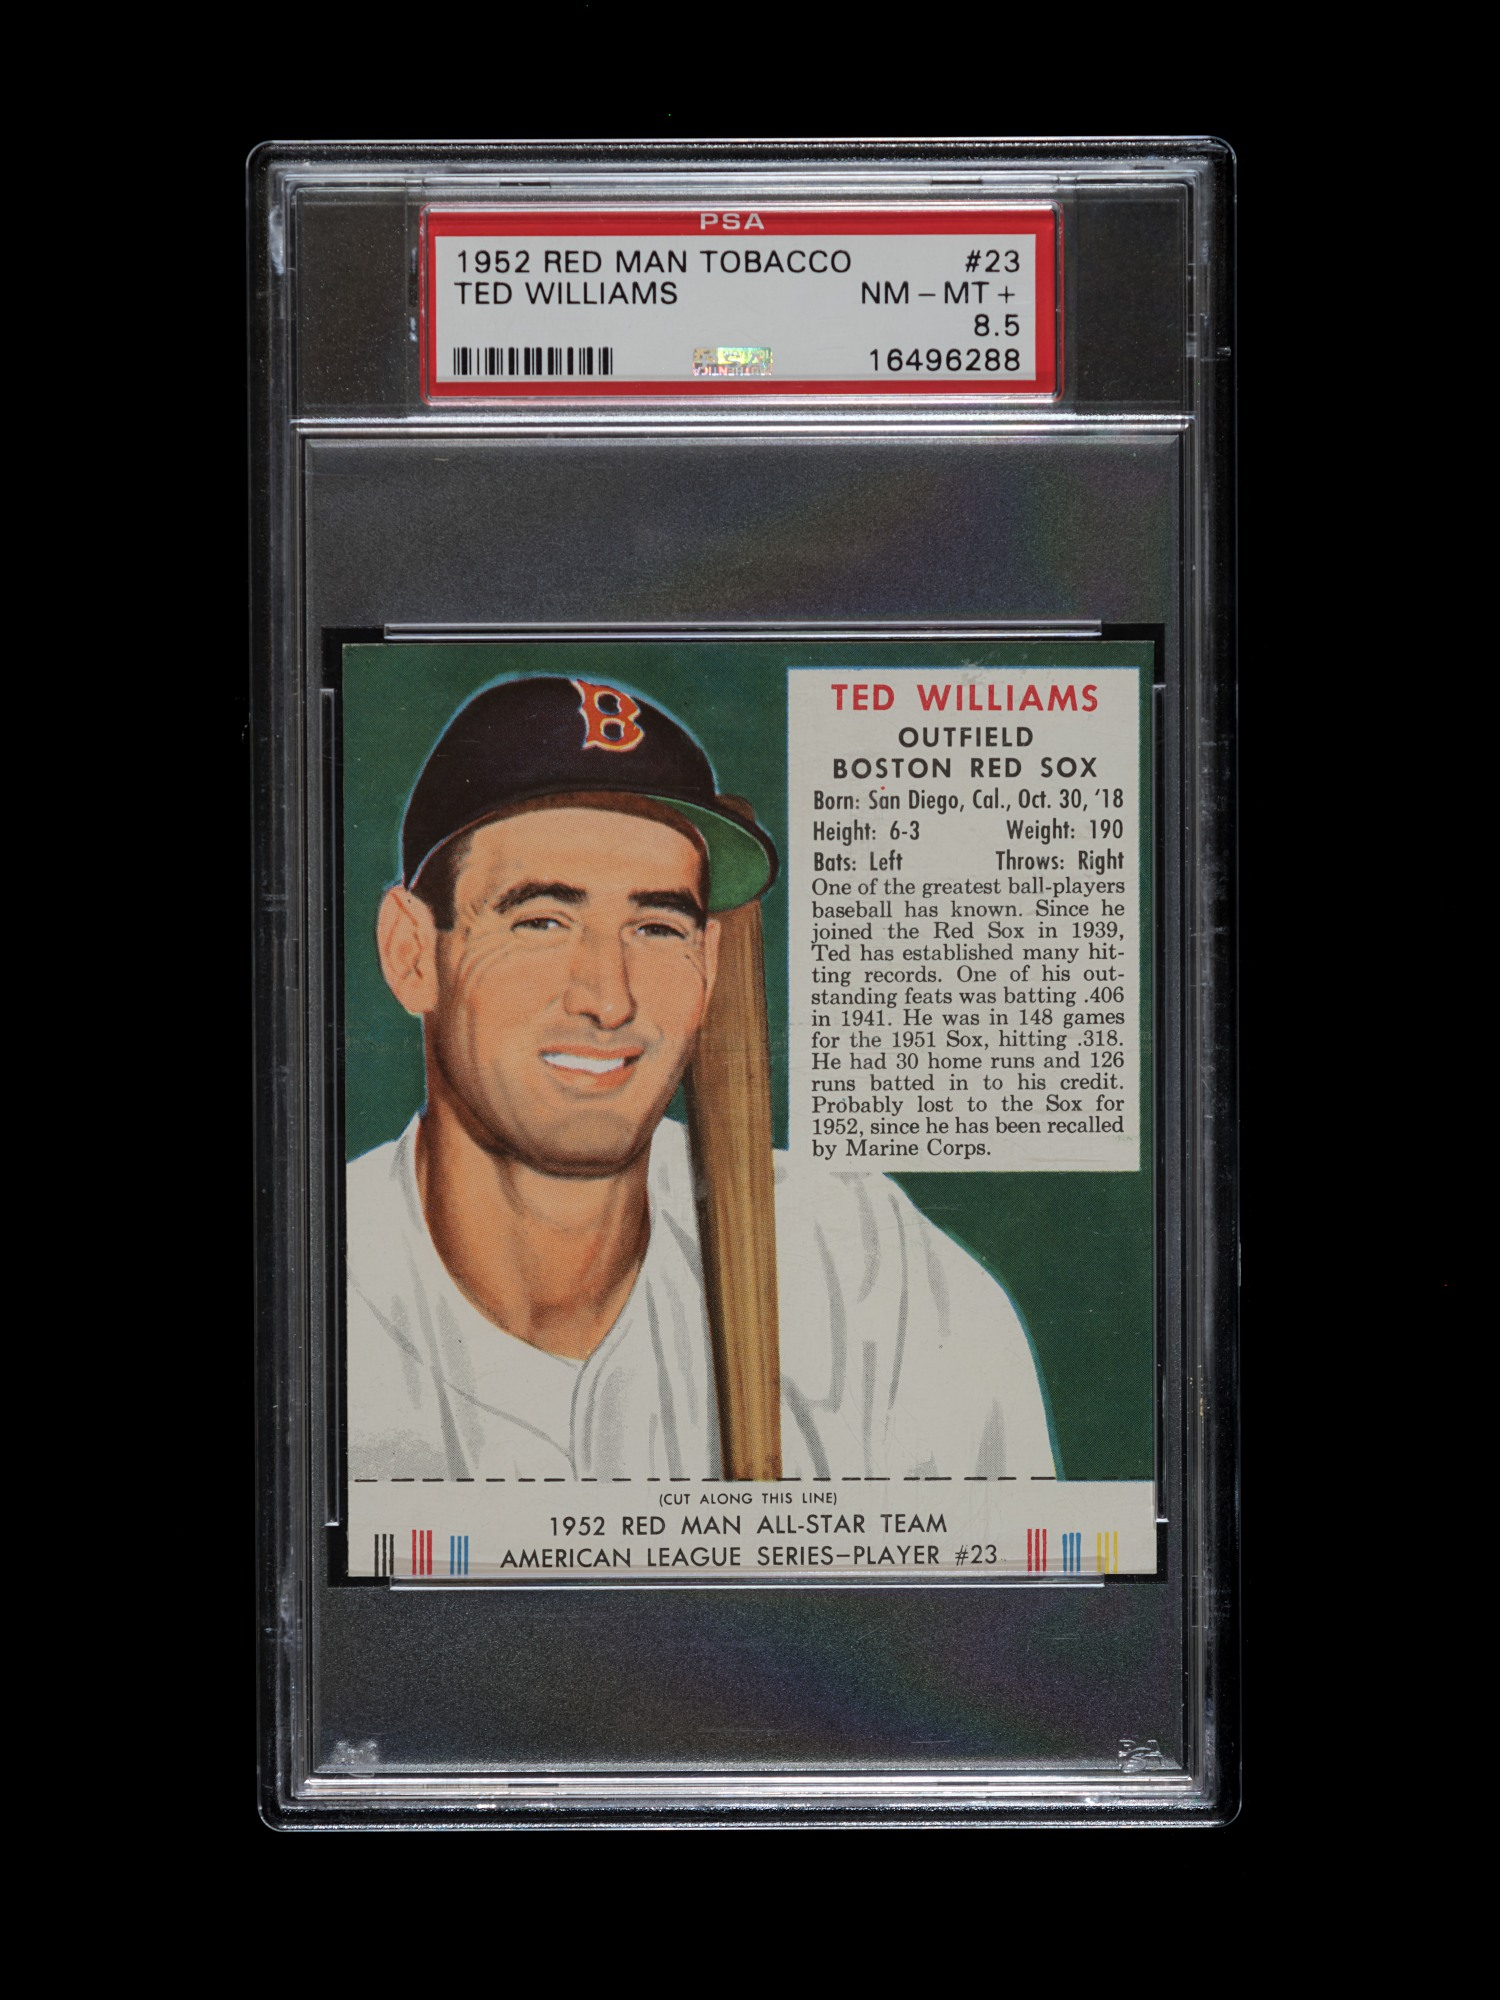 Red Man Ted Williams 1952 PSA 8.5